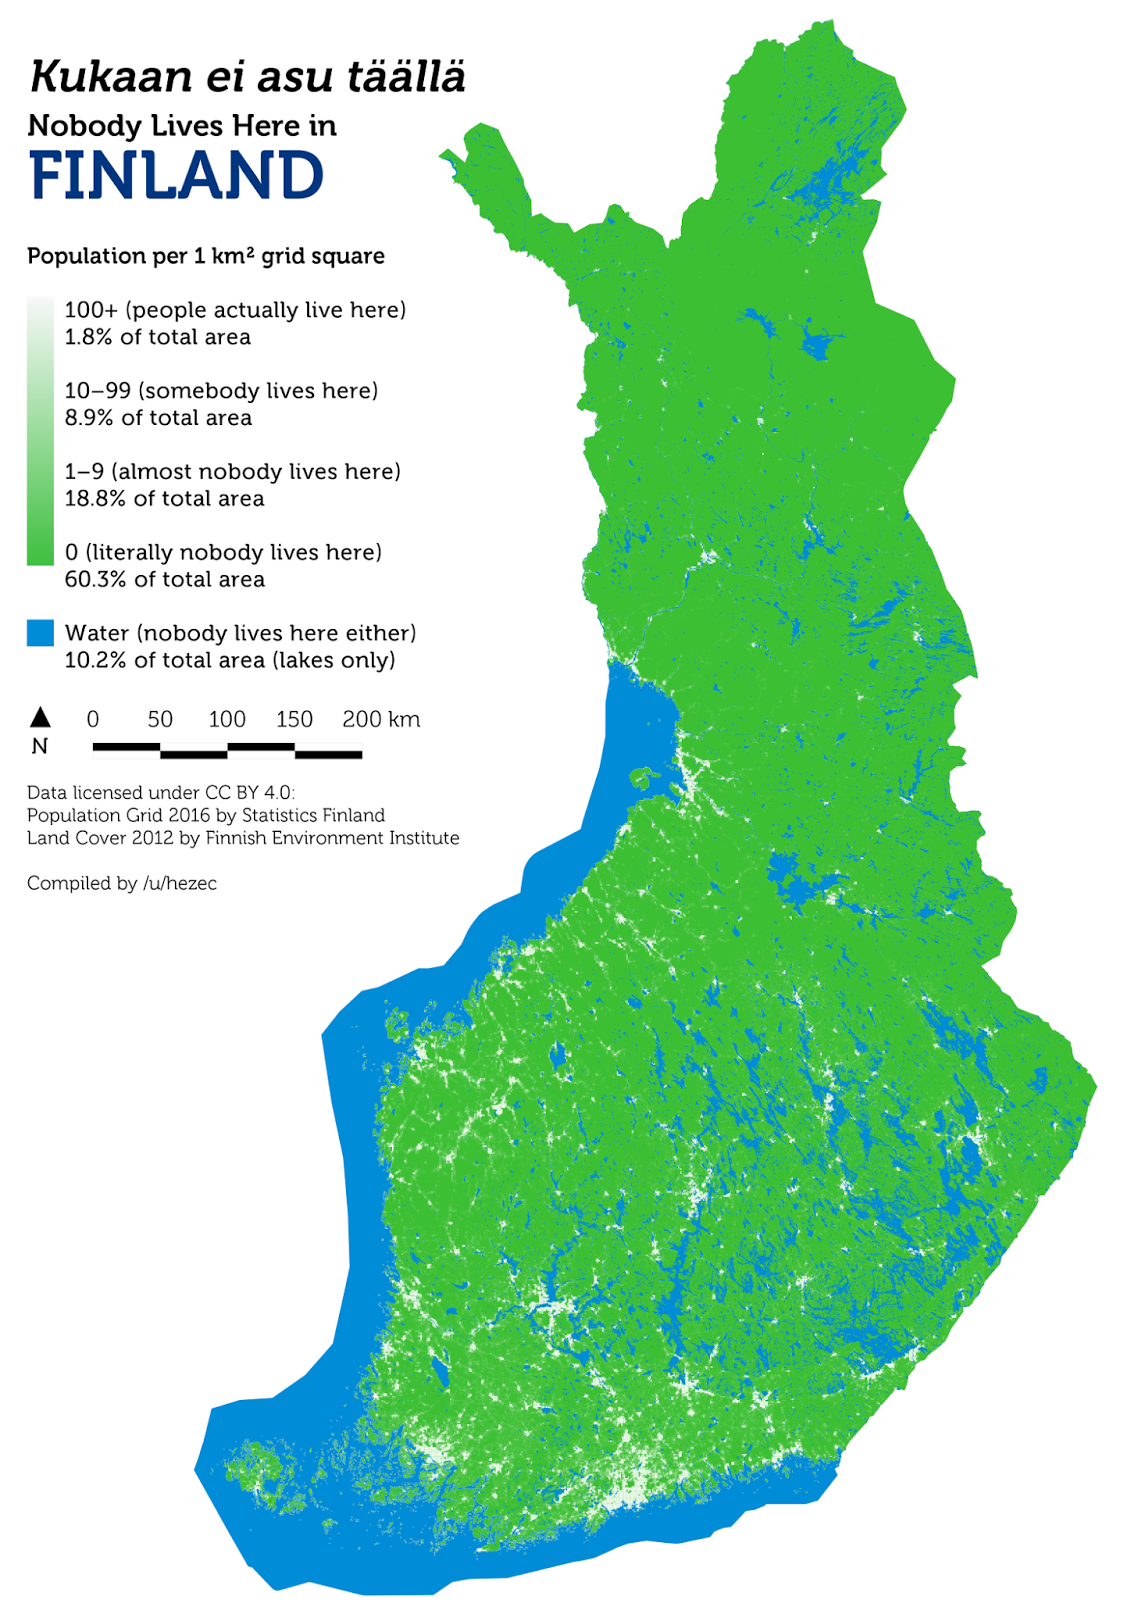 Nobody lives here in Finland